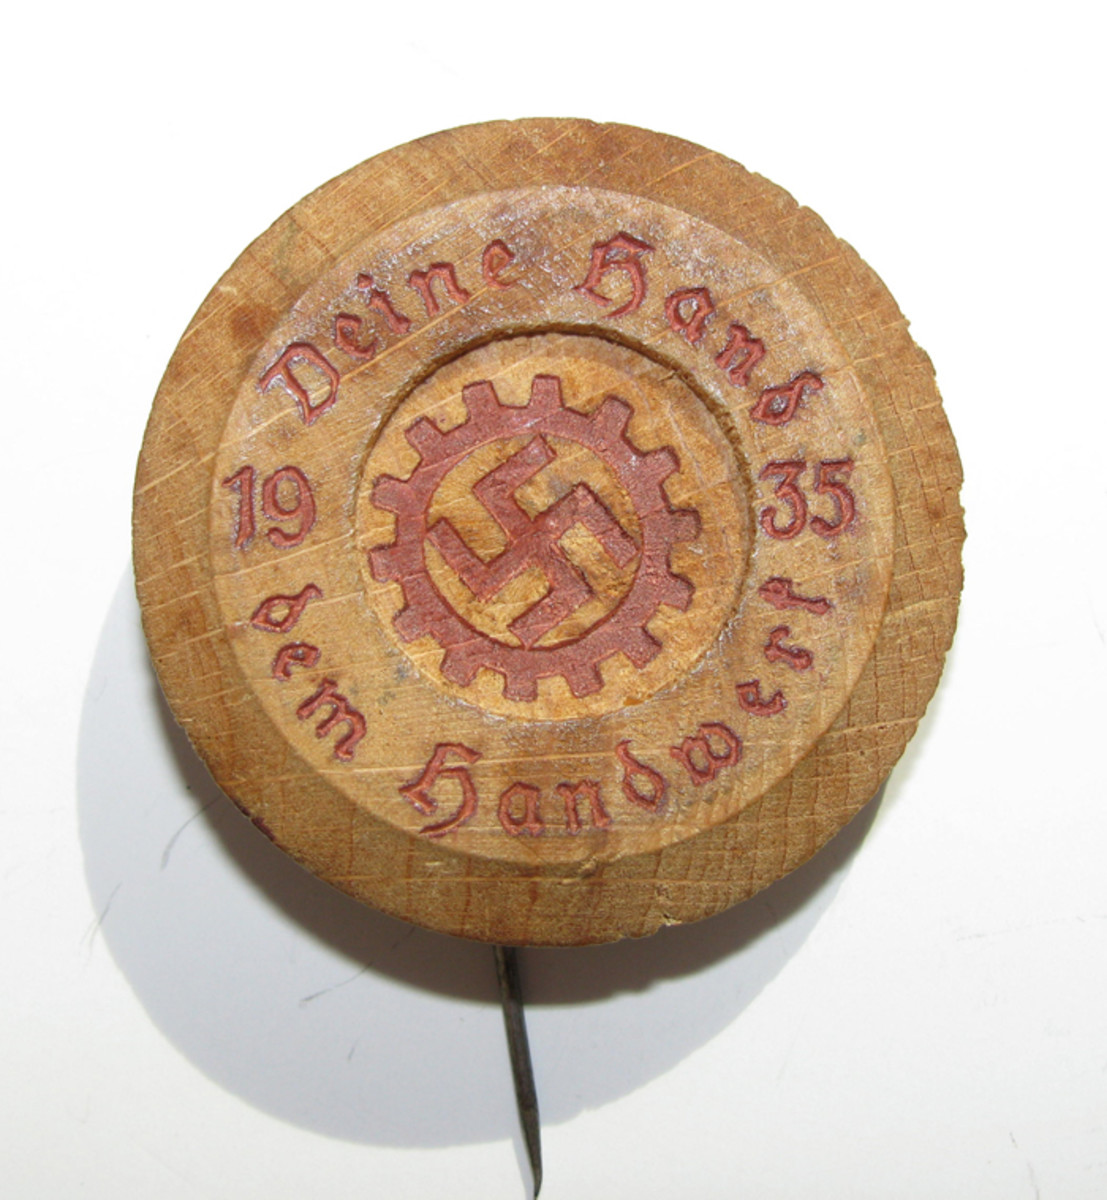 """A small Deutscher Arbeitsfront (DAF)""""tinnie"""" made from stamped and painted wood with a metal pin back."""